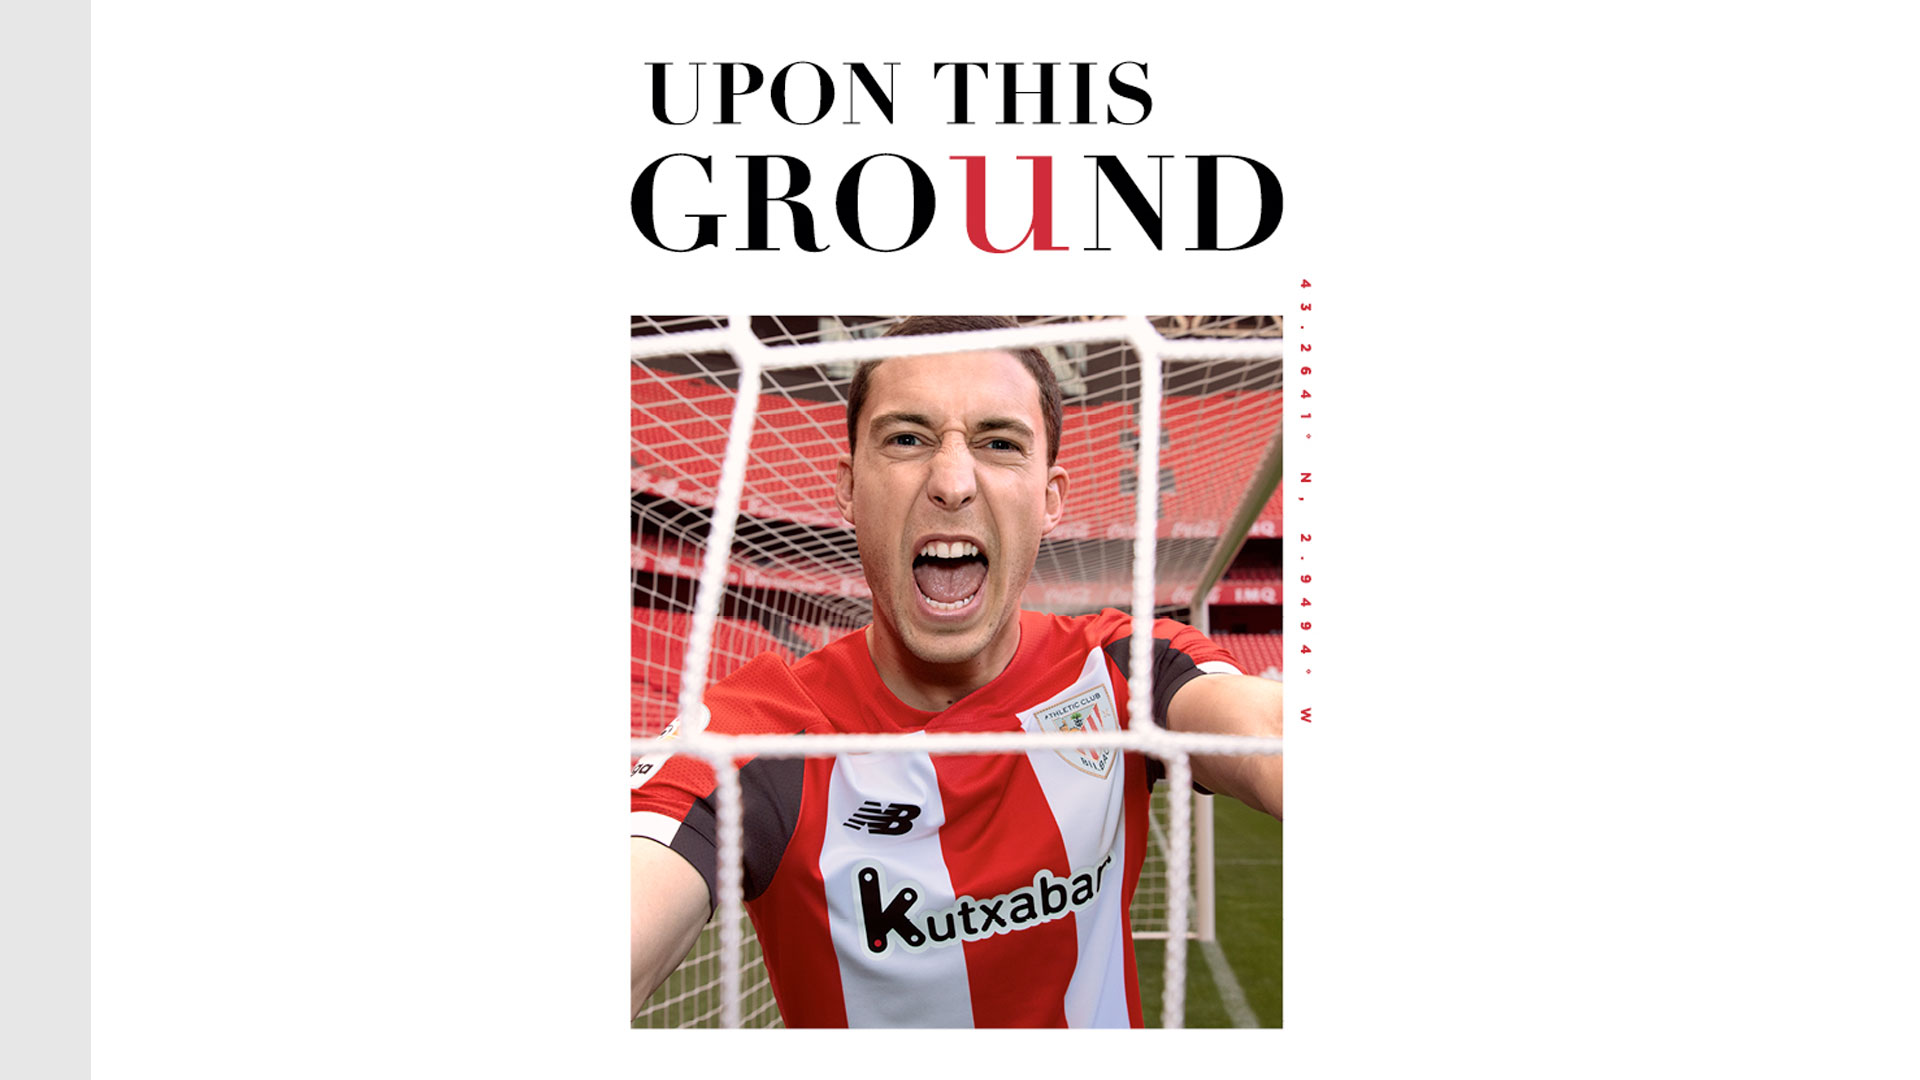 New kits 19/20: Upon This Ground